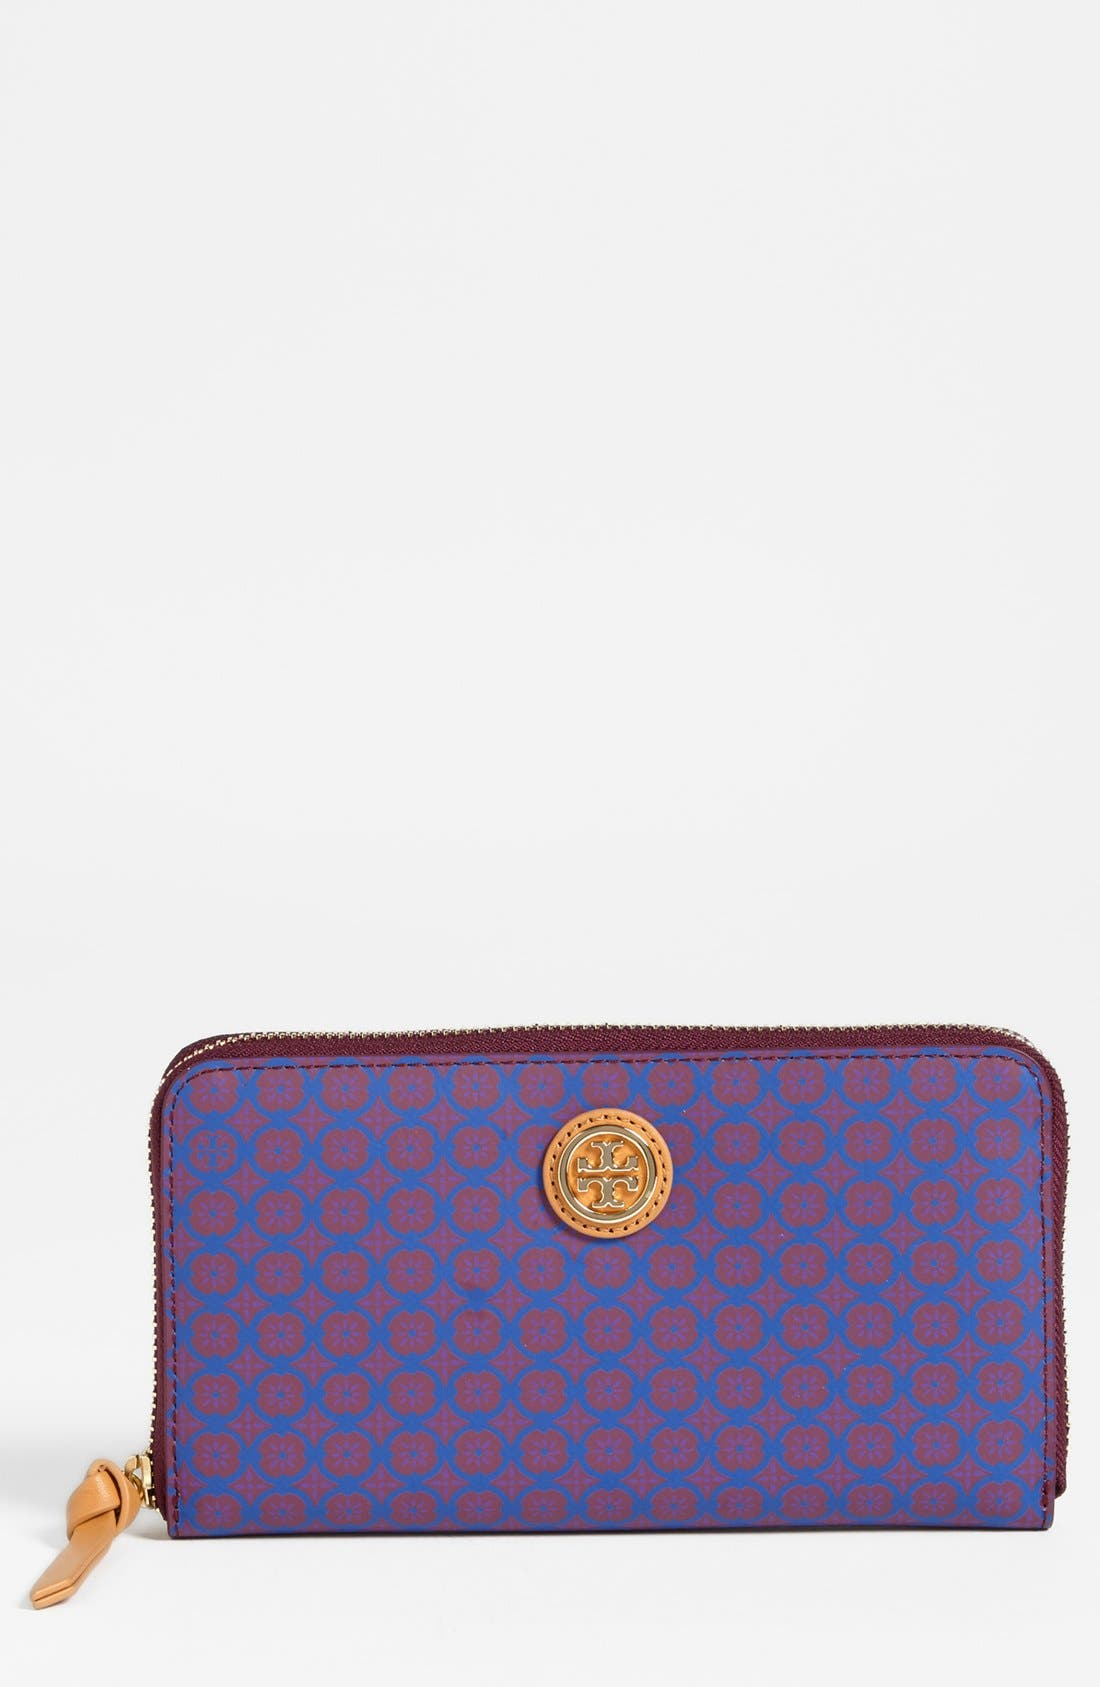 Alternate Image 1 Selected - Tory Burch 'Halland' Continental Wallet